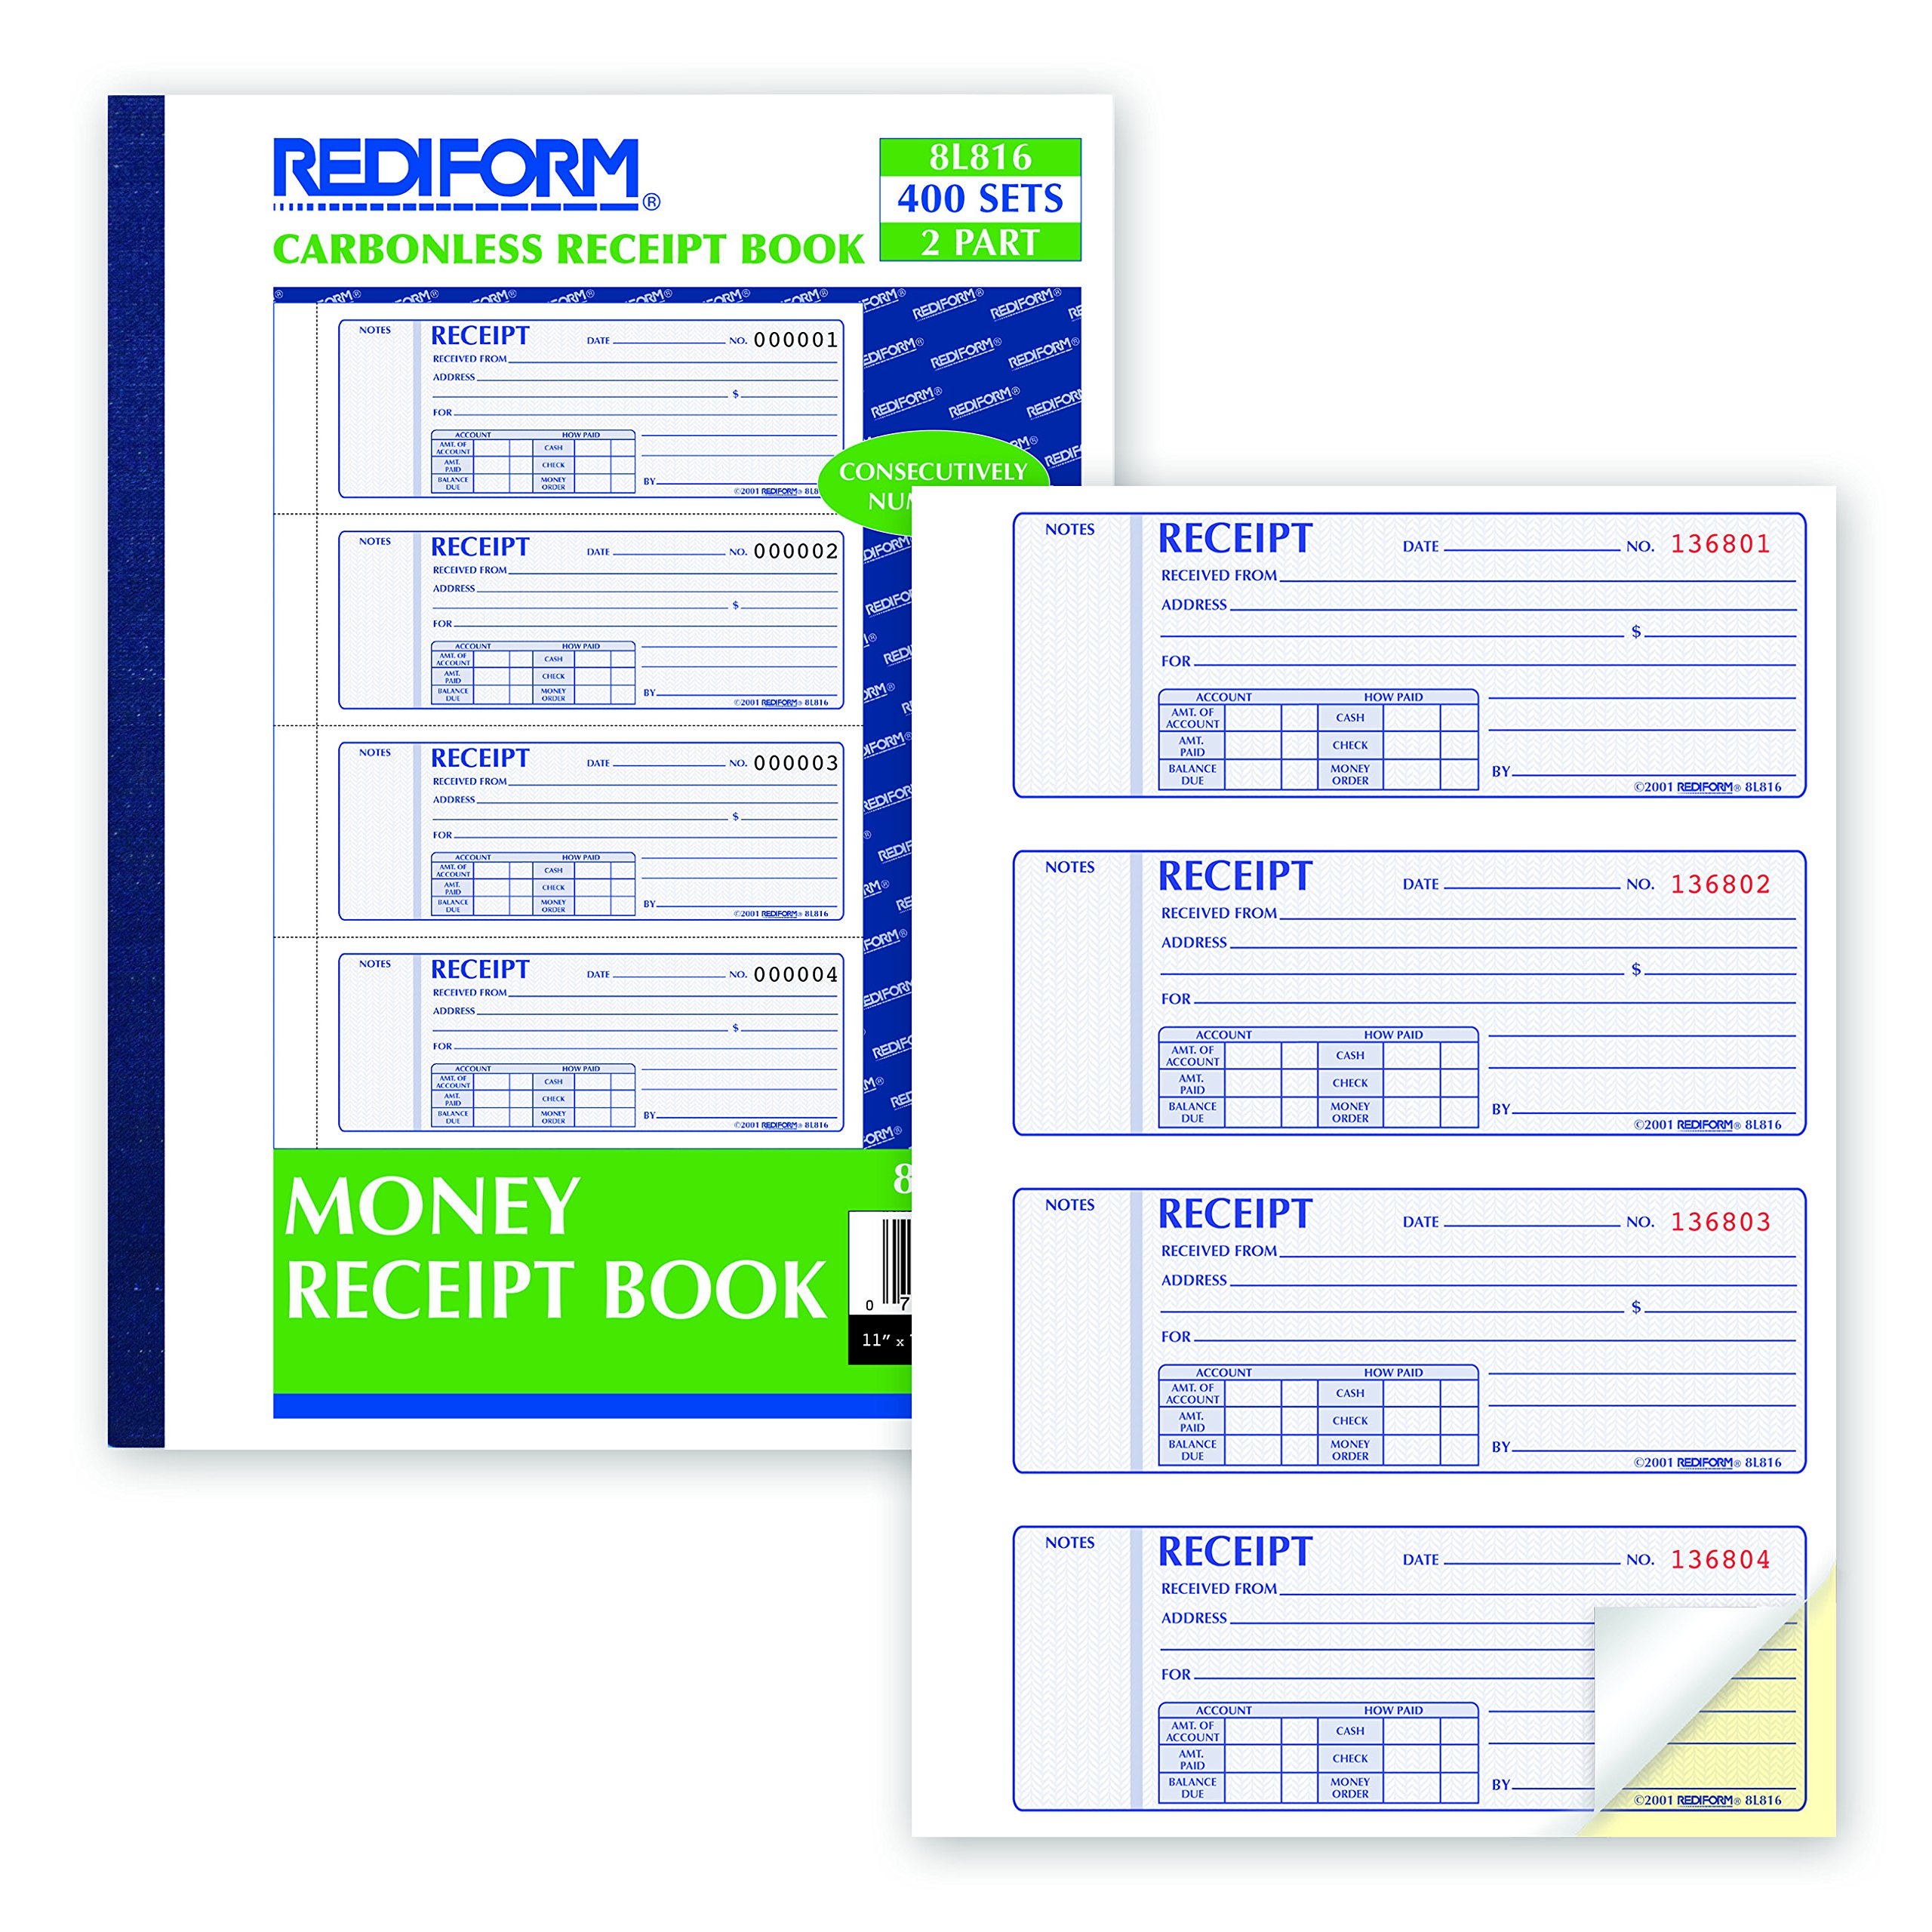 REDIFORM Money Receipt Books Black Print Carbonless, Duplicate, 400 Sets per Book (8L816) by Rediform (Image #3)